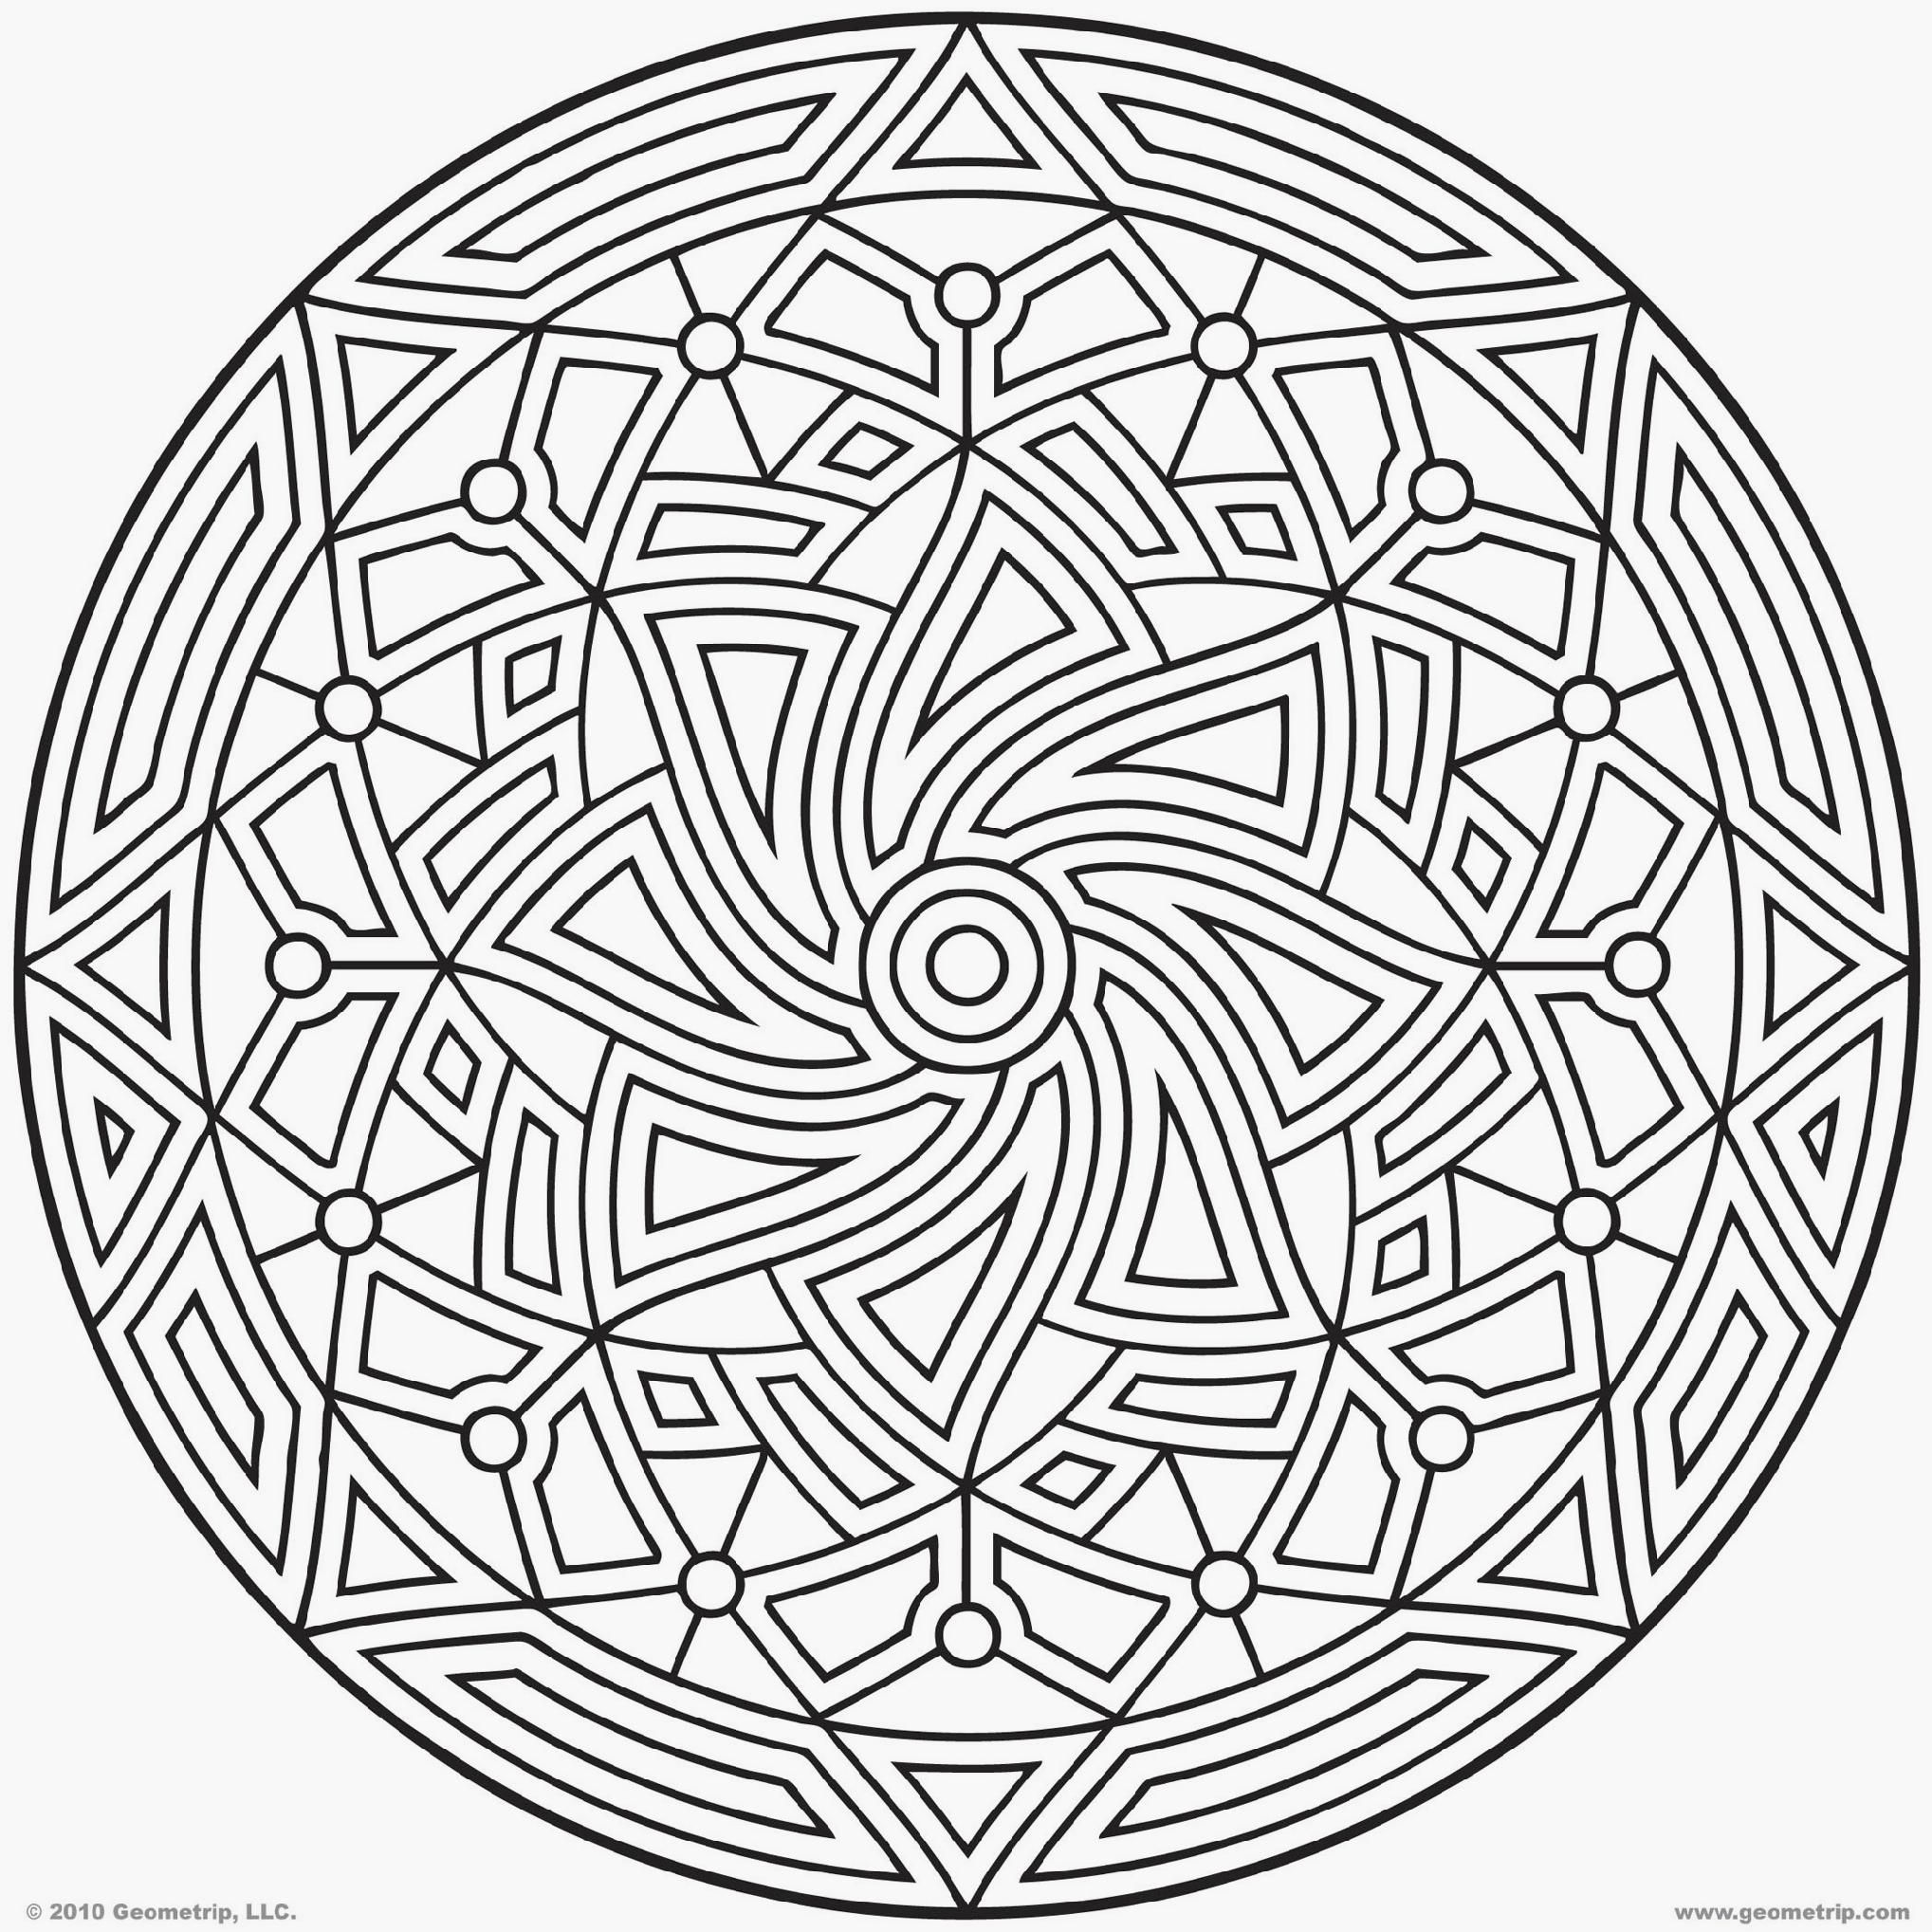 Flower mosaic coloring pages - Flower Mosaic Coloring Pages Mosaic Coloring Pages Printable Roman